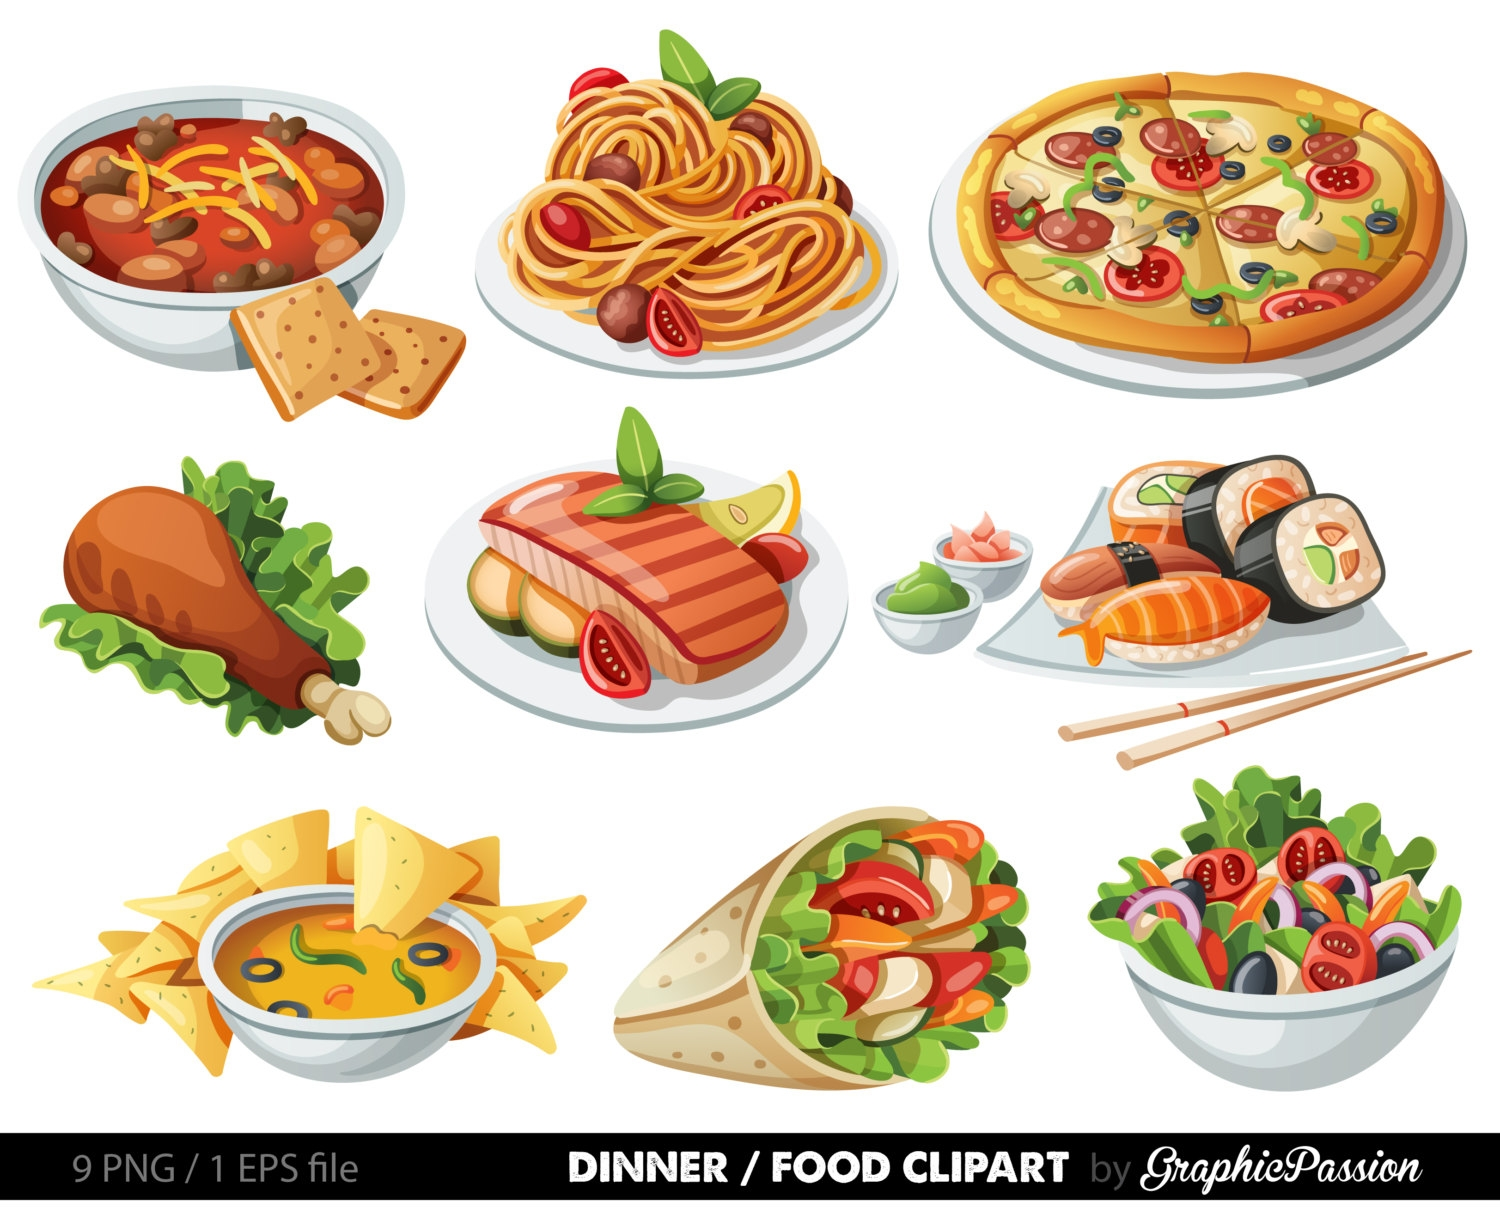 Pictures of food clipart.